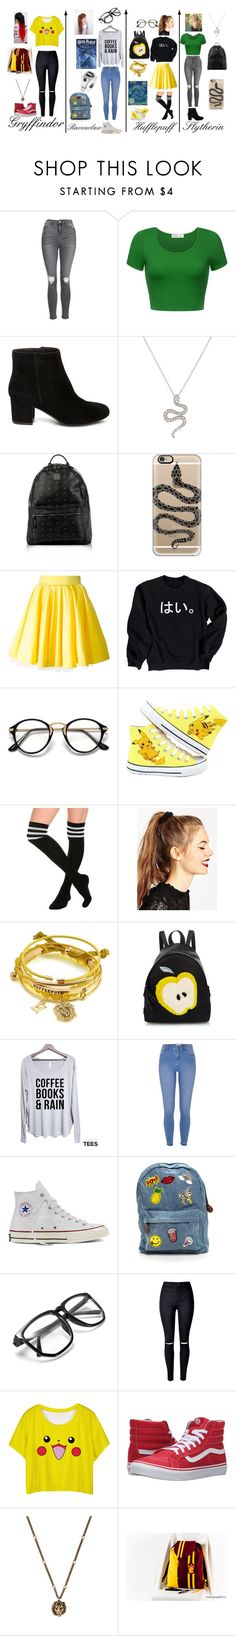 """""""Back to school Harry Potter style :)"""" by mynameisblrryface ❤ liked on Polyvore featuring Topshop, Steve Madden, MCM, Casetify, Philipp Plein, Hai, ASOS, Fendi, River Island and Converse"""